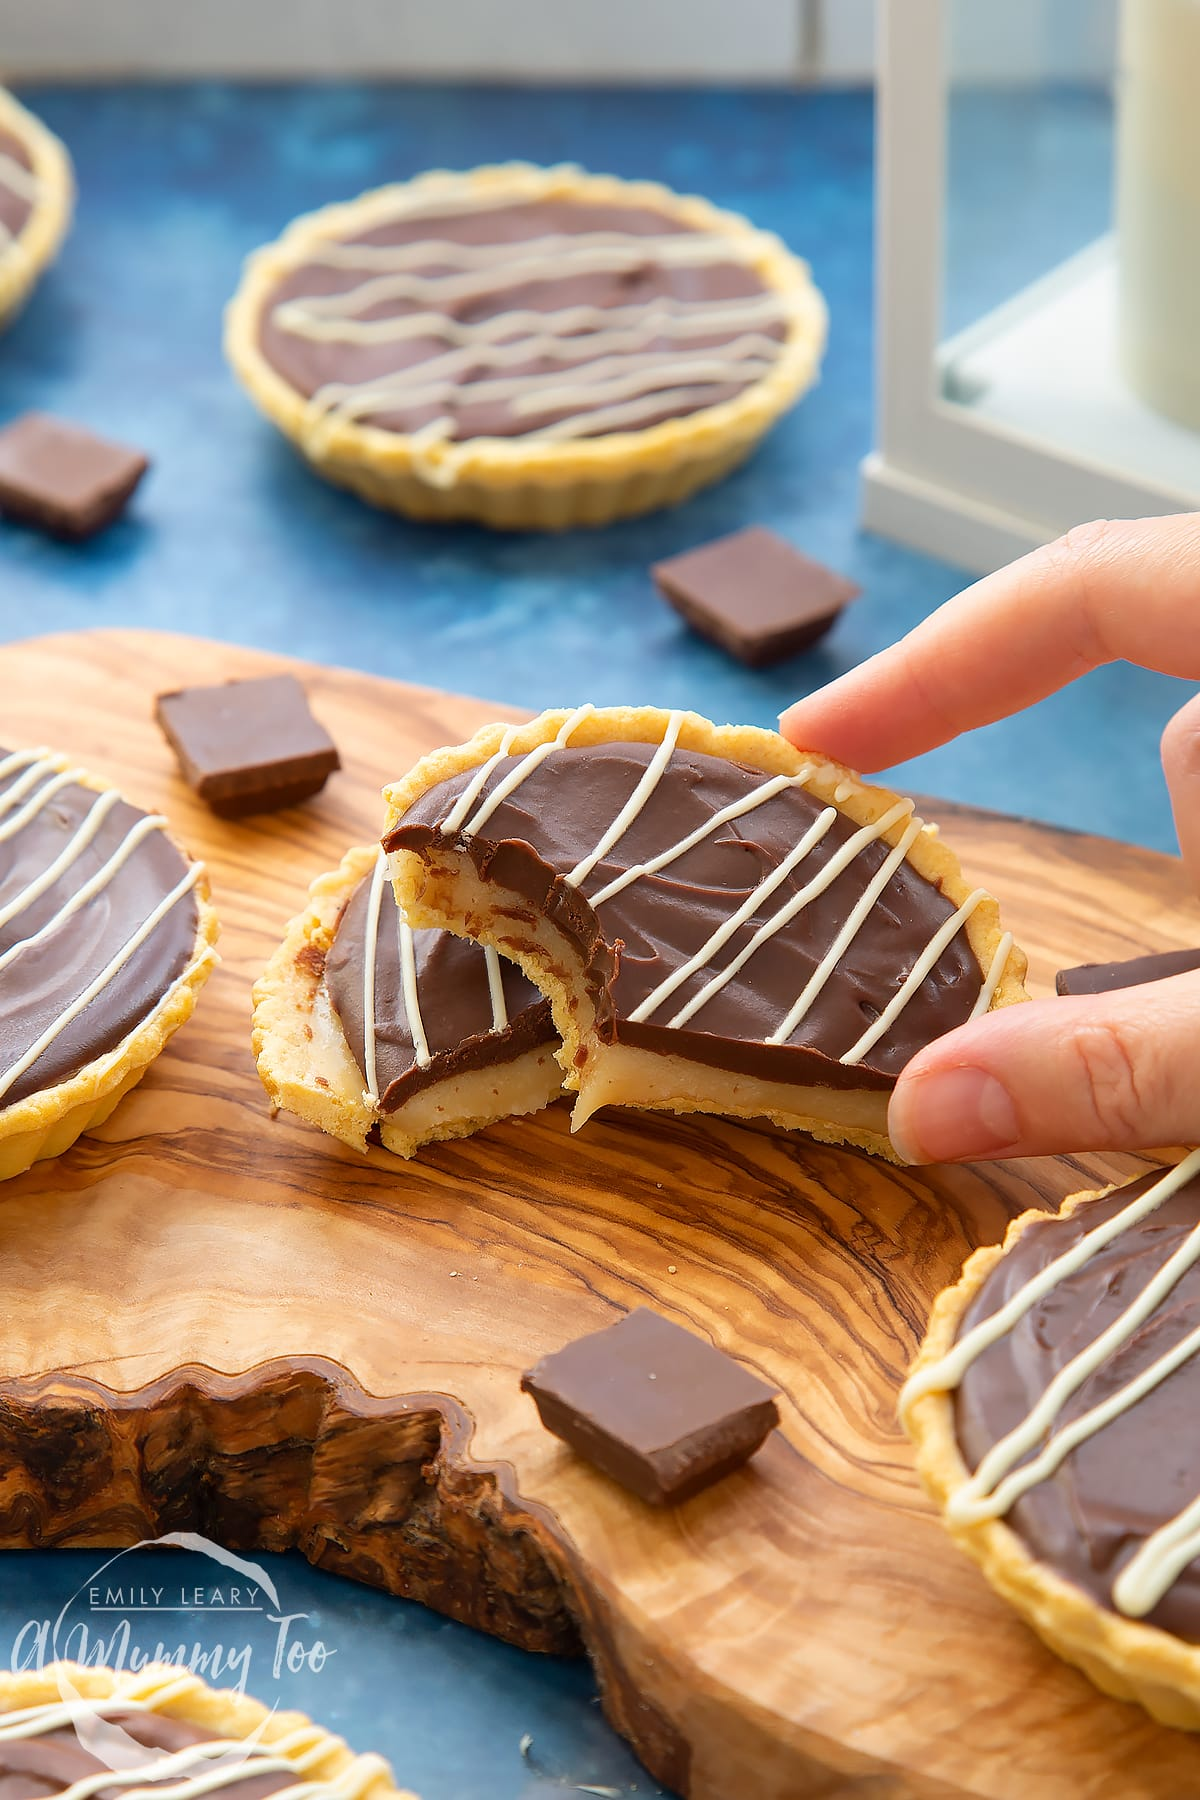 Mini chocolate tarts on an olive board. One tart has been cut in half. A hand holds a half, which has a bite out of it.